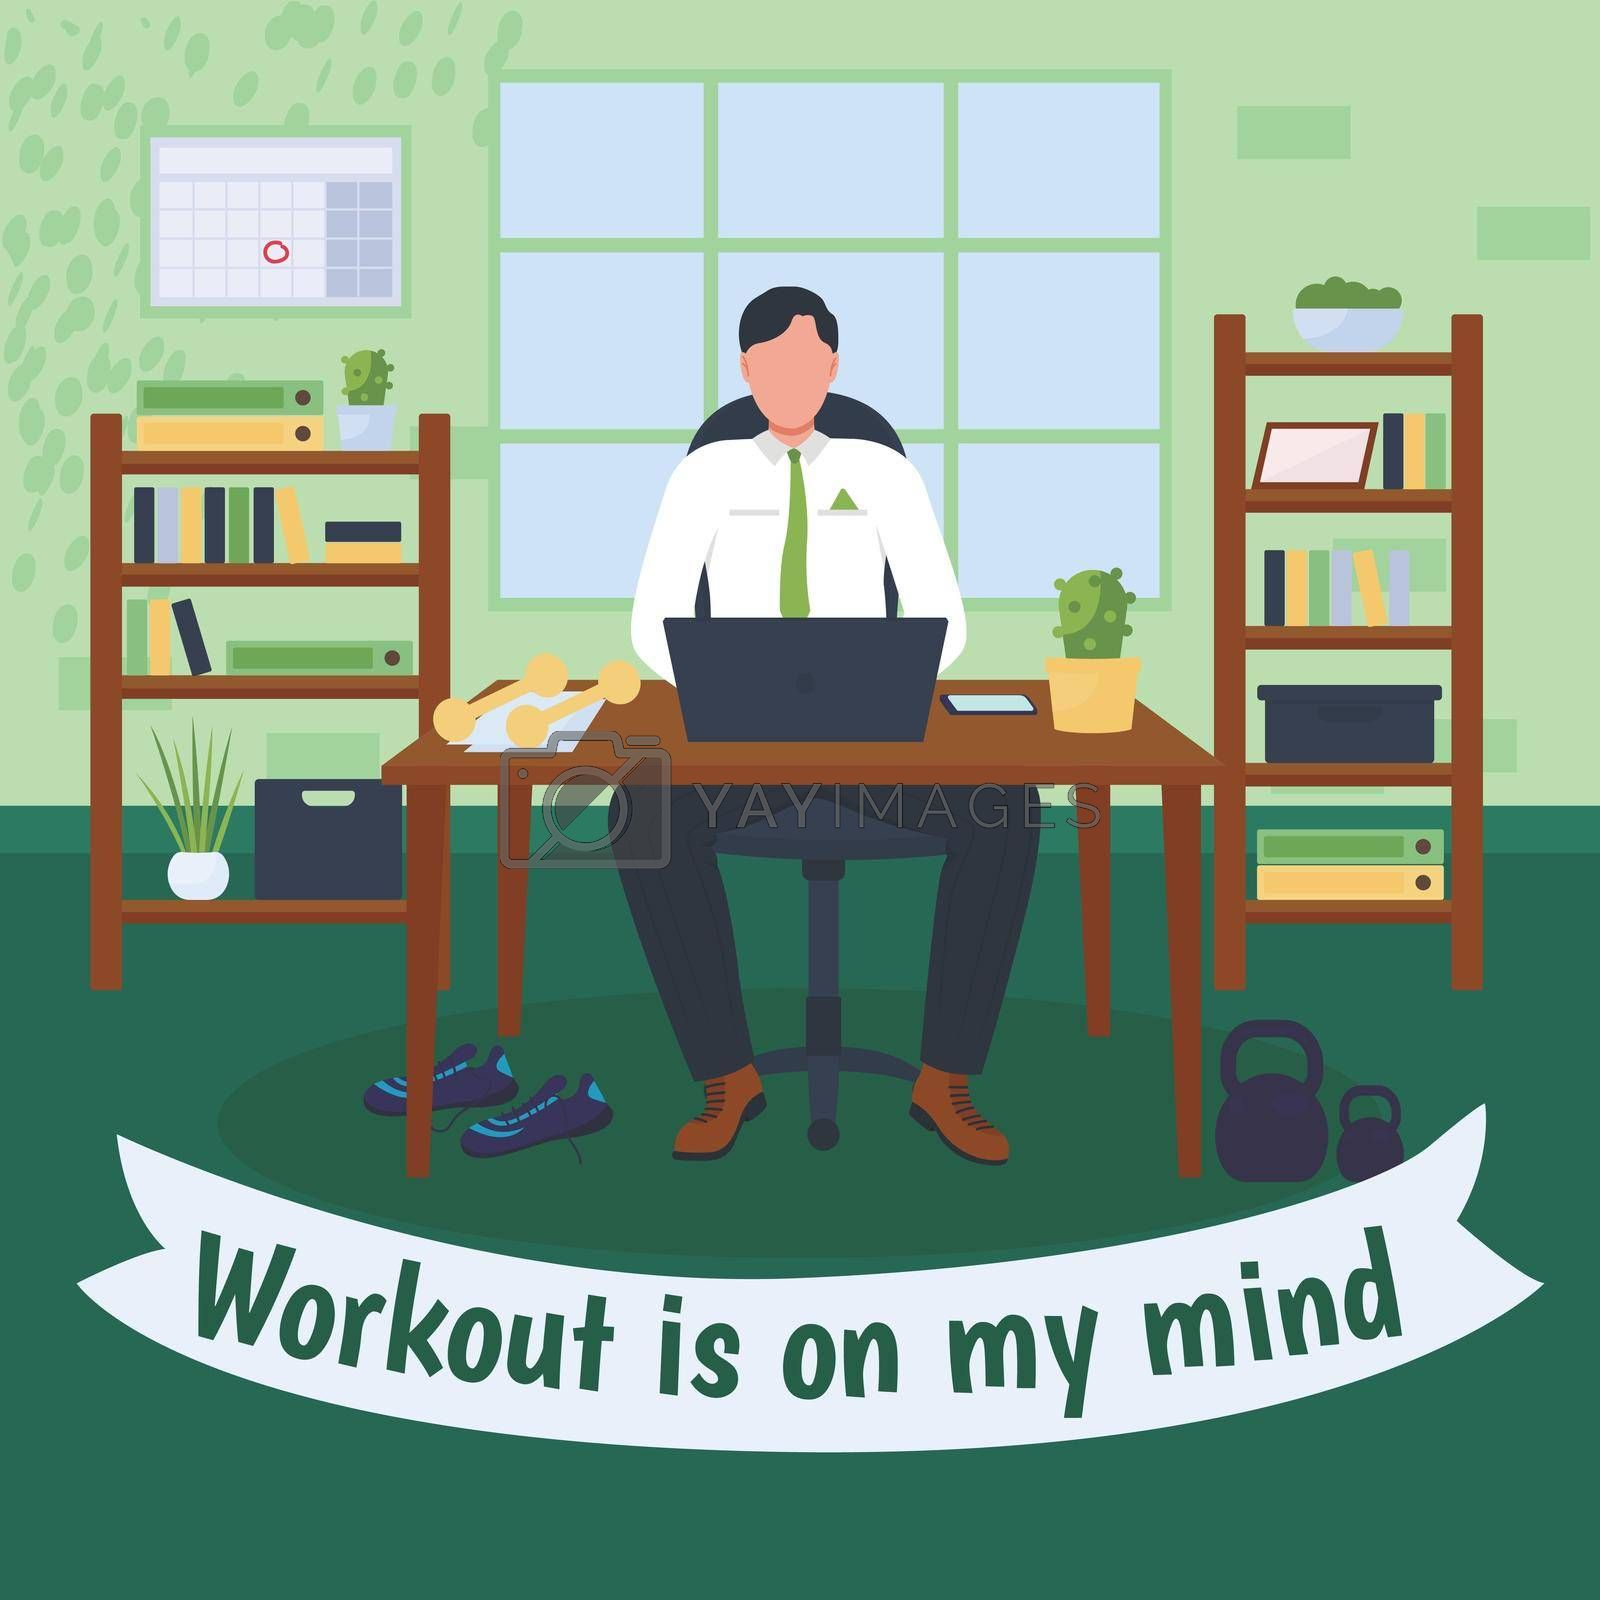 Royalty free image of Workout at workplace social media post mockup by ntl